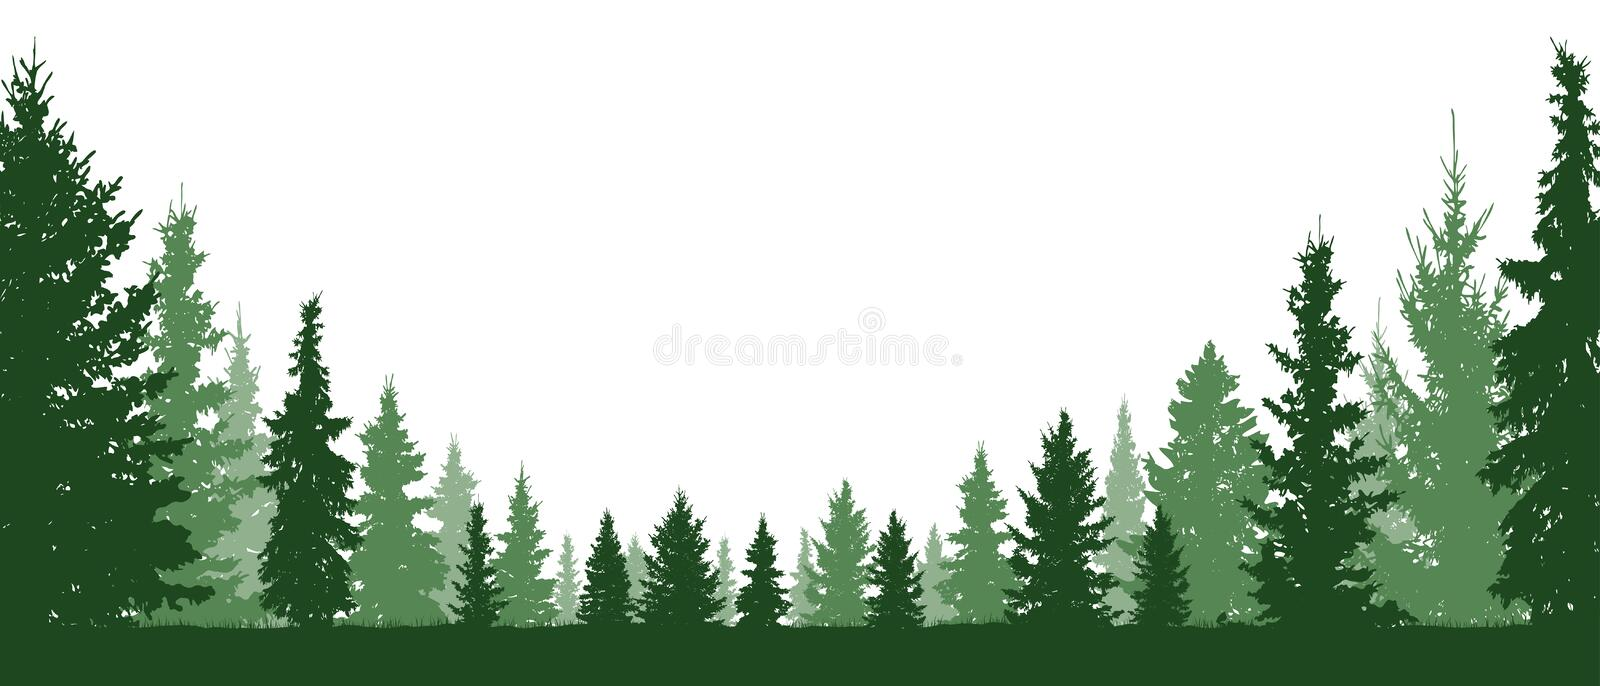 Forest evergreen, coniferous trees, silhouette vector background. vector illustration